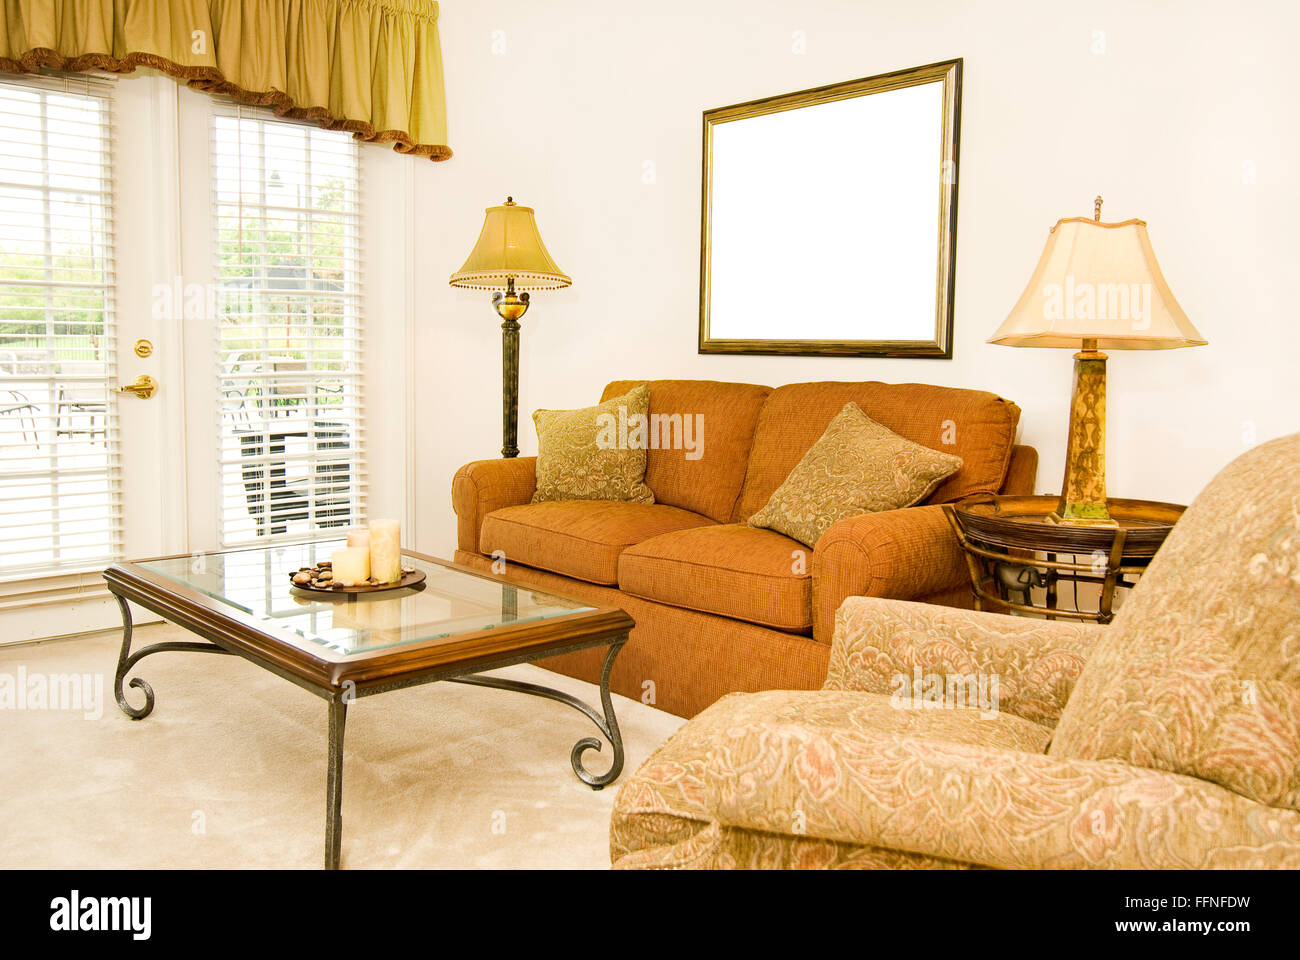 Living Room With Blank Picture Frame - Stock Image